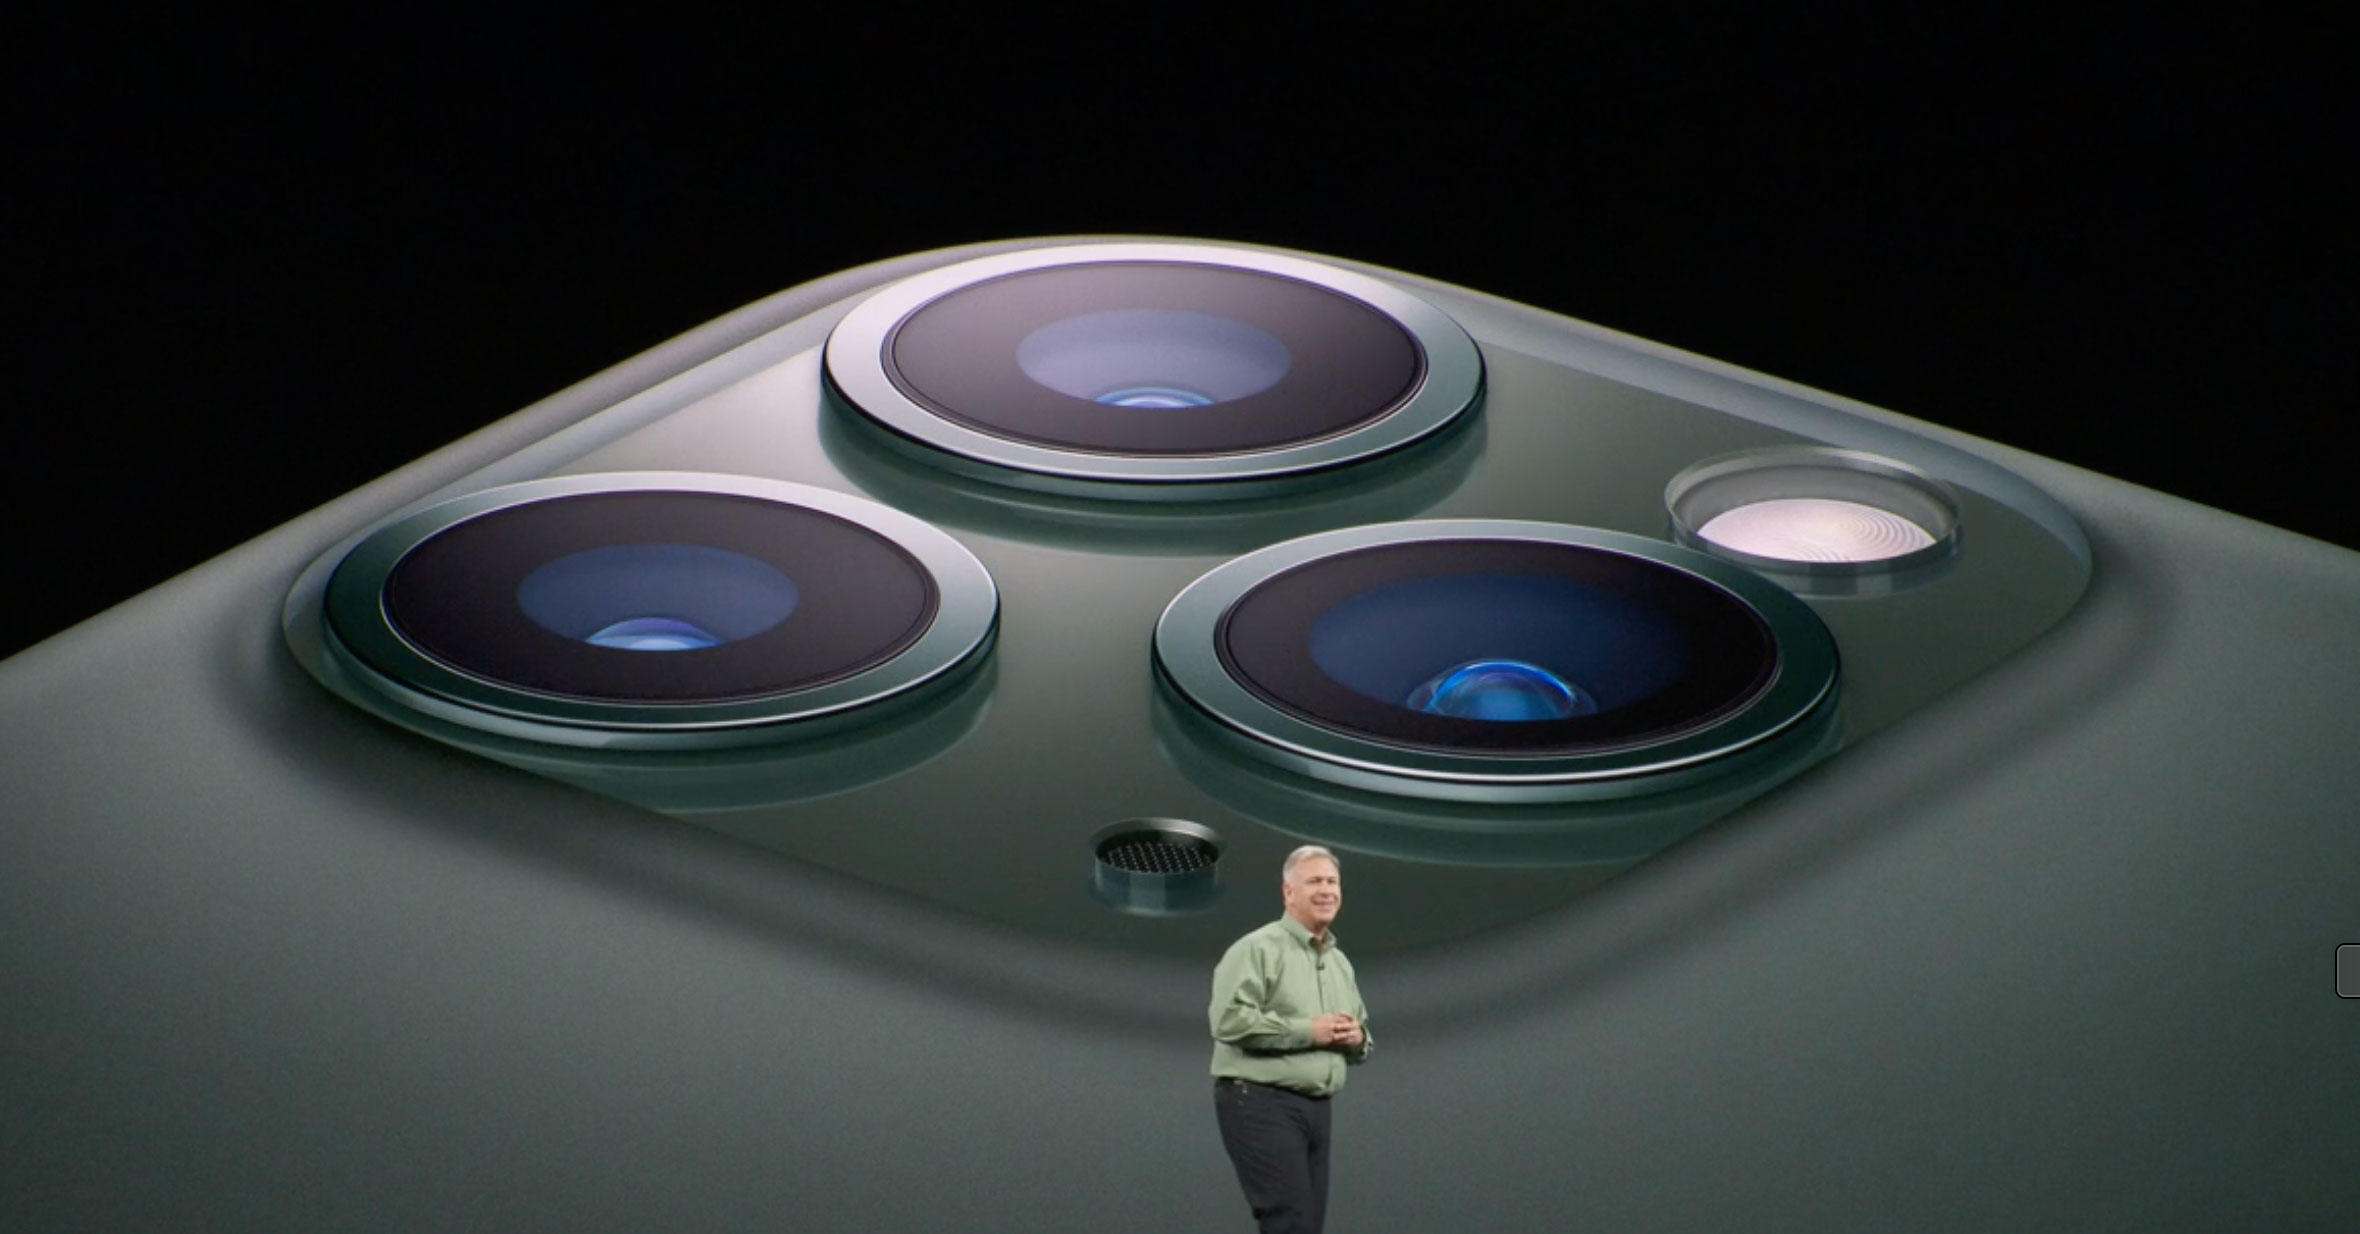 Apple marketing chief Phil Schiller shows off the iPhone 11 Pro's three cameras.